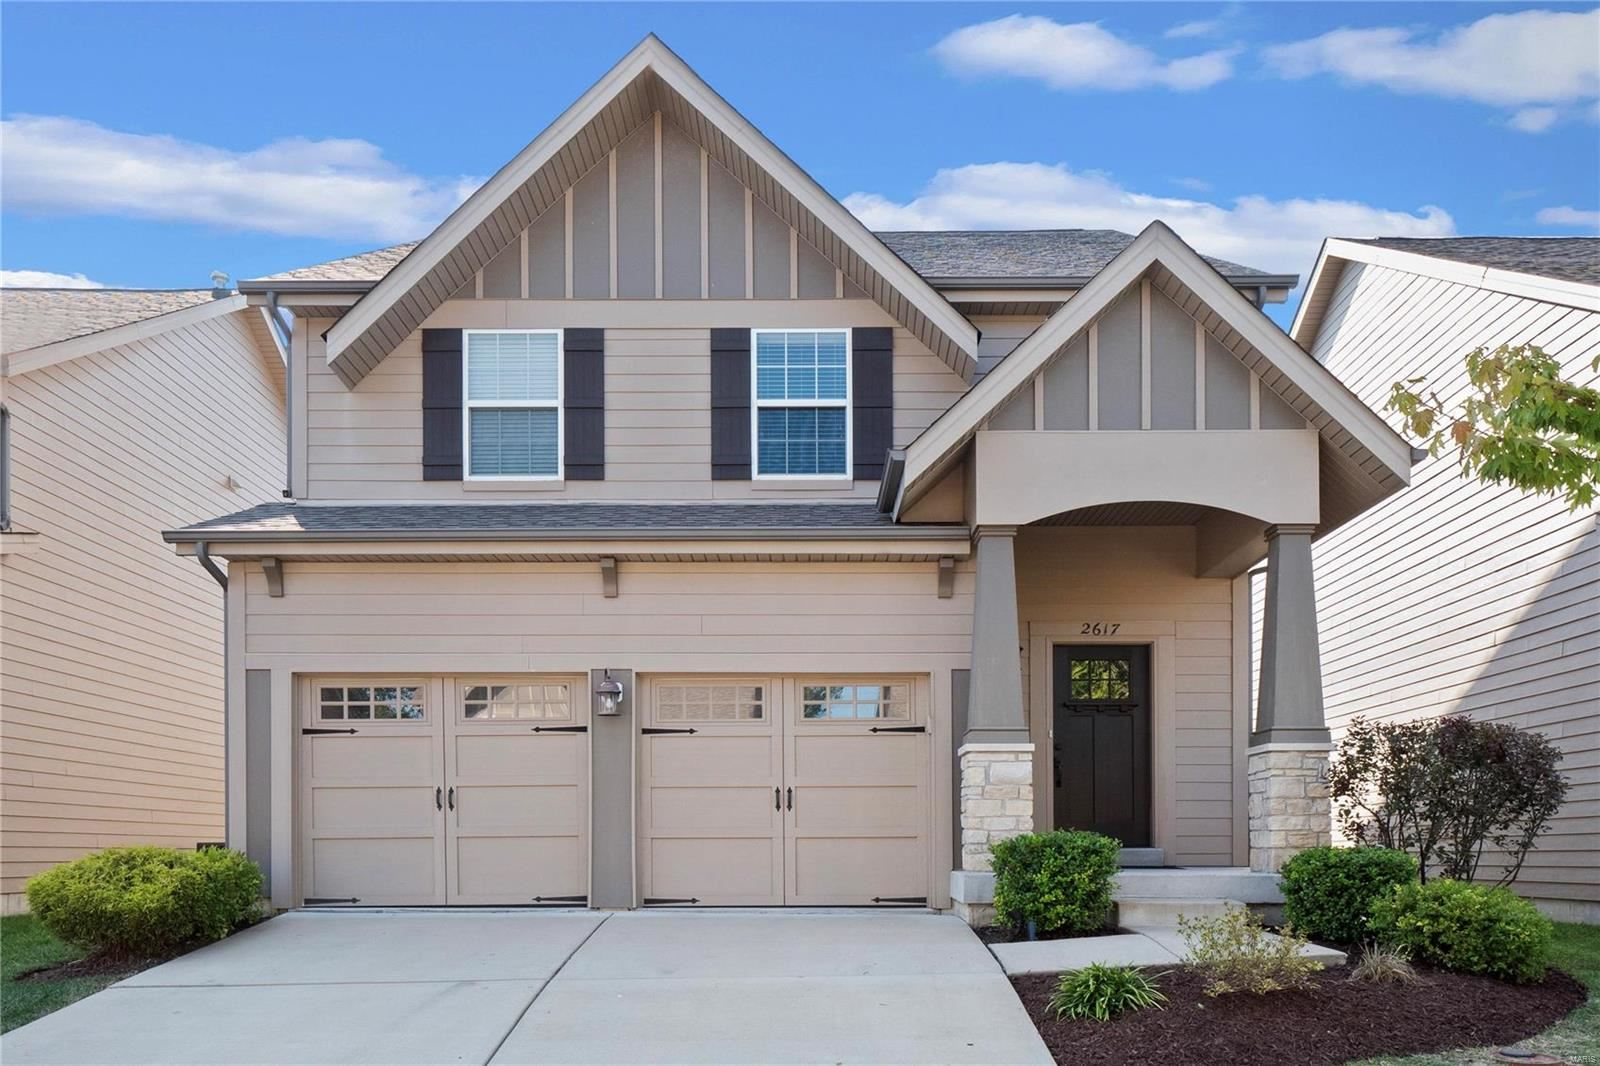 2617 Grover Crossing, Grover, MO 63040 - MLS#: 21063582